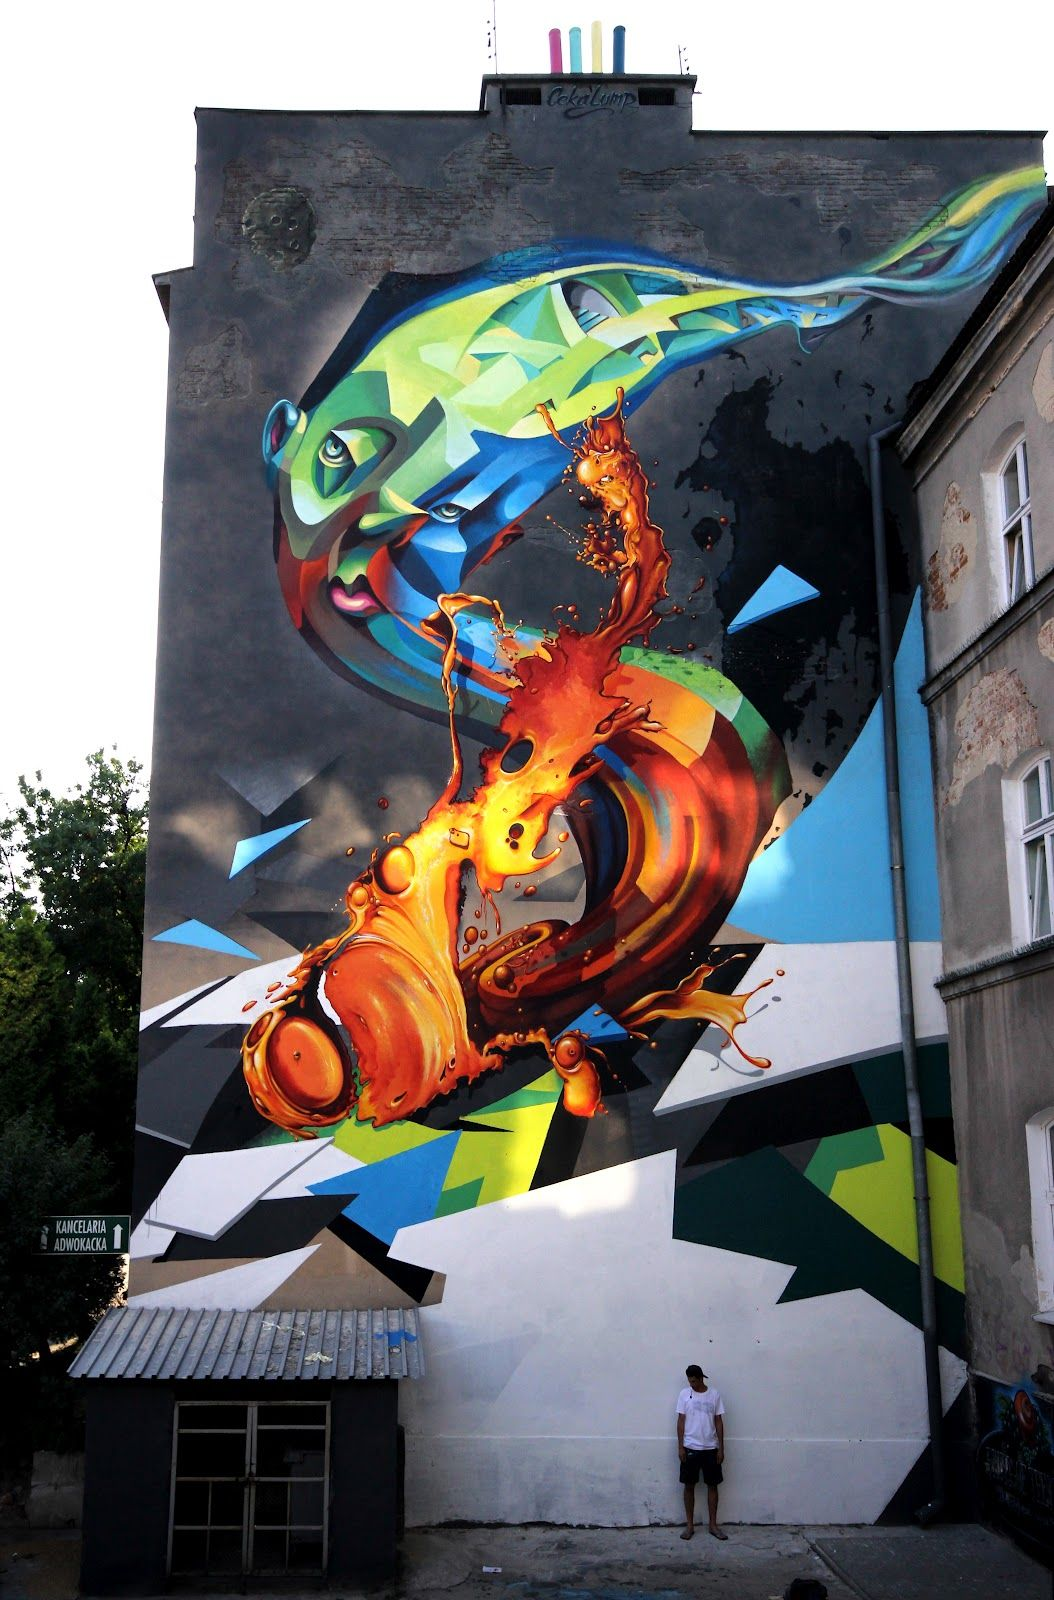 By ceka100 in Lublin, Poland.... and i think that is beautiful and awesome i want that in the side of my house too... lol